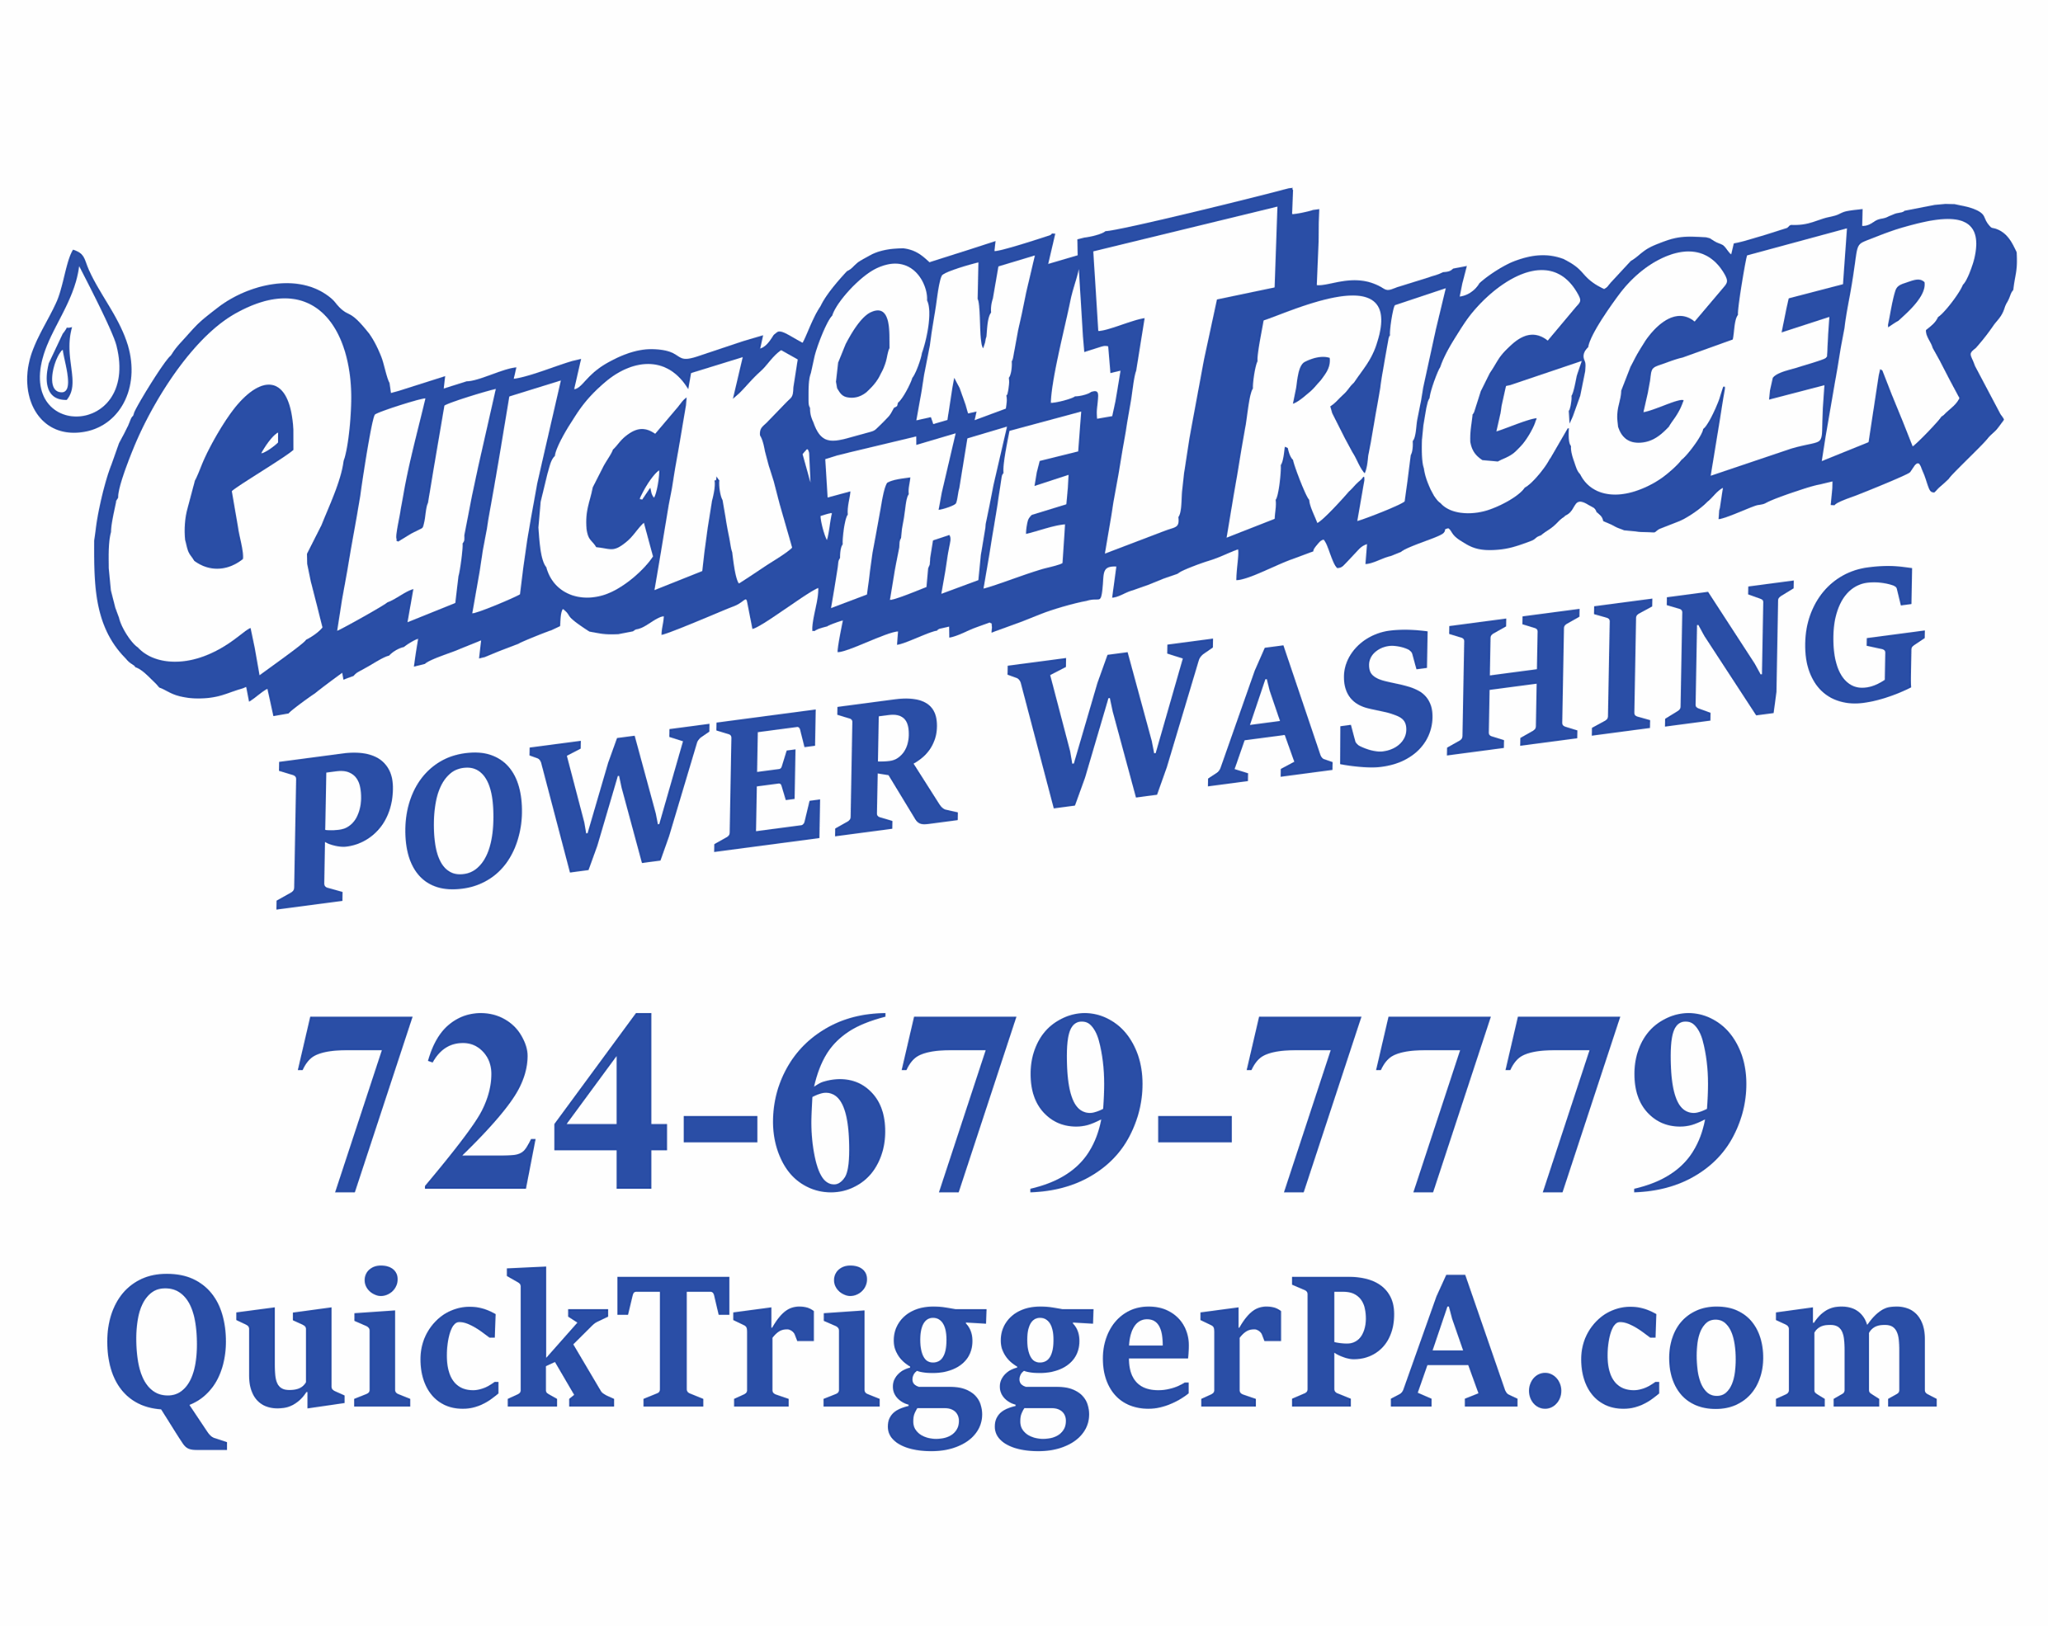 Quick On The Trigger Power Washing LLC image 0